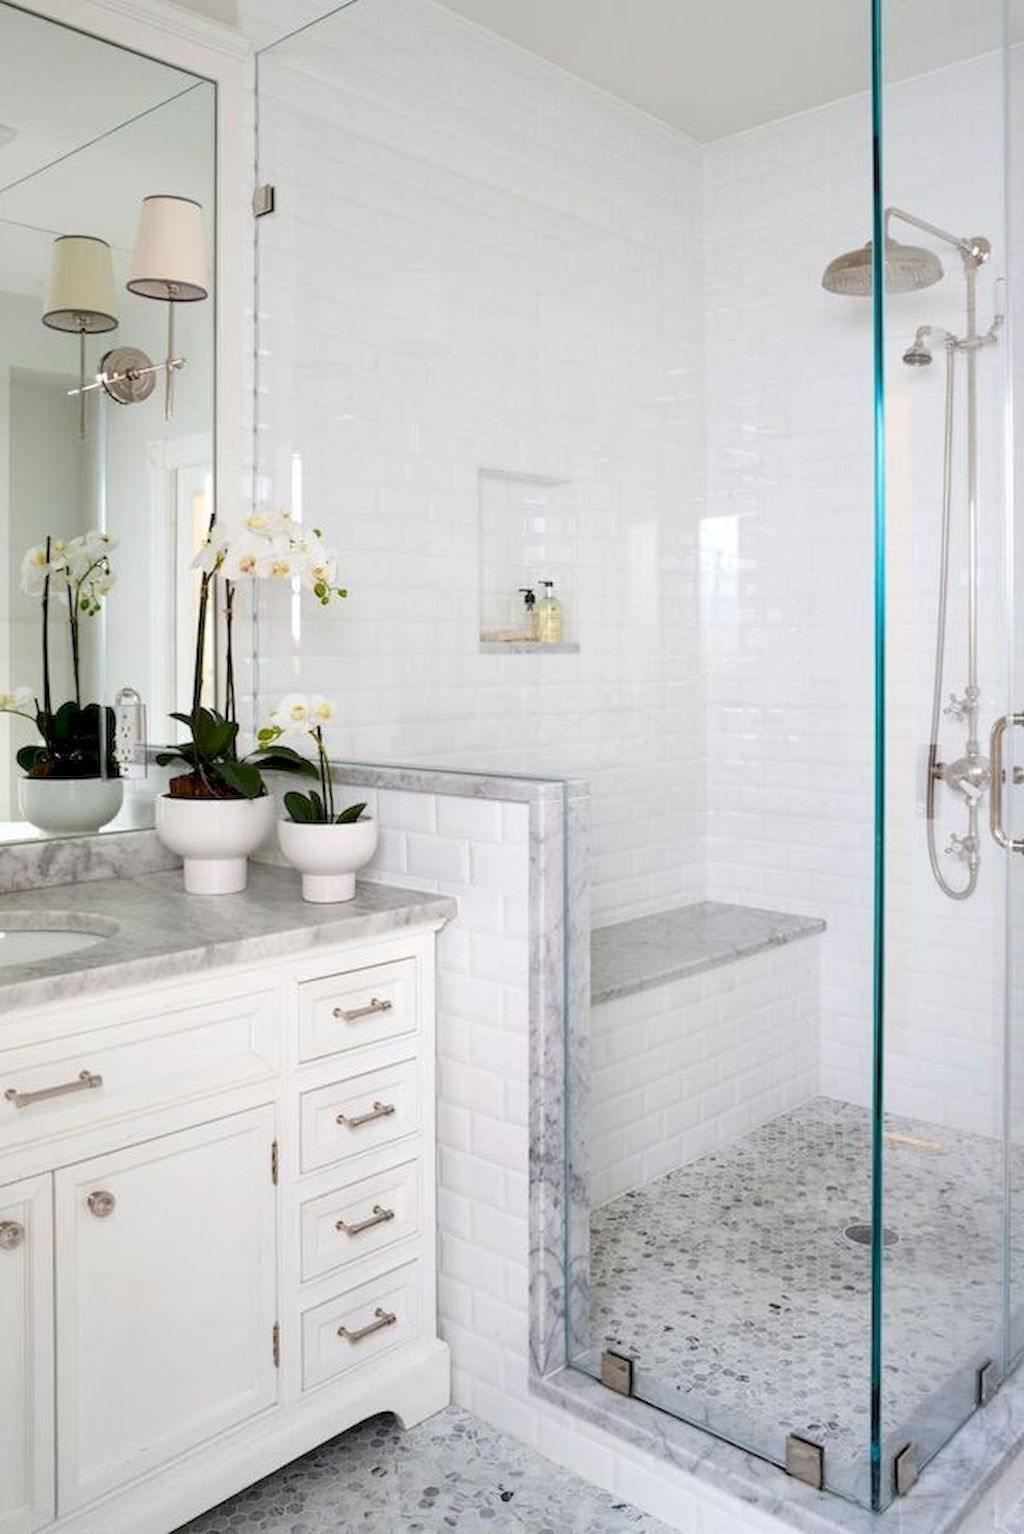 small master bathroom remodel ideas. Cool 55 Small Master Bathroom Remodel Ideas https homeastern com  bathrooms